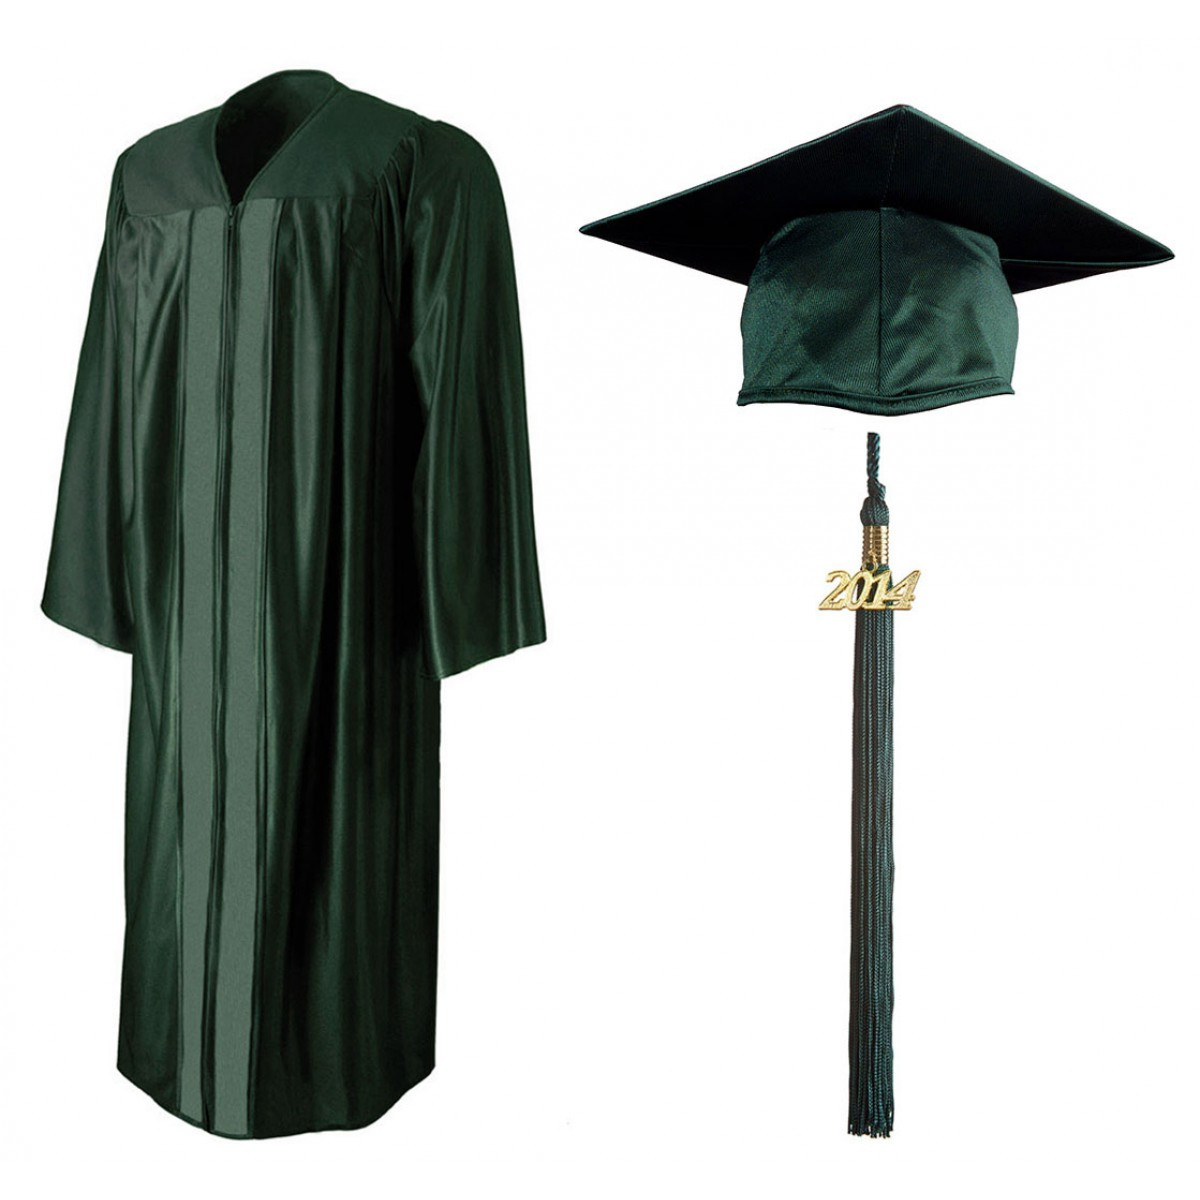 Shiny Forest Green Cap Gown Tassel Cool School Studios